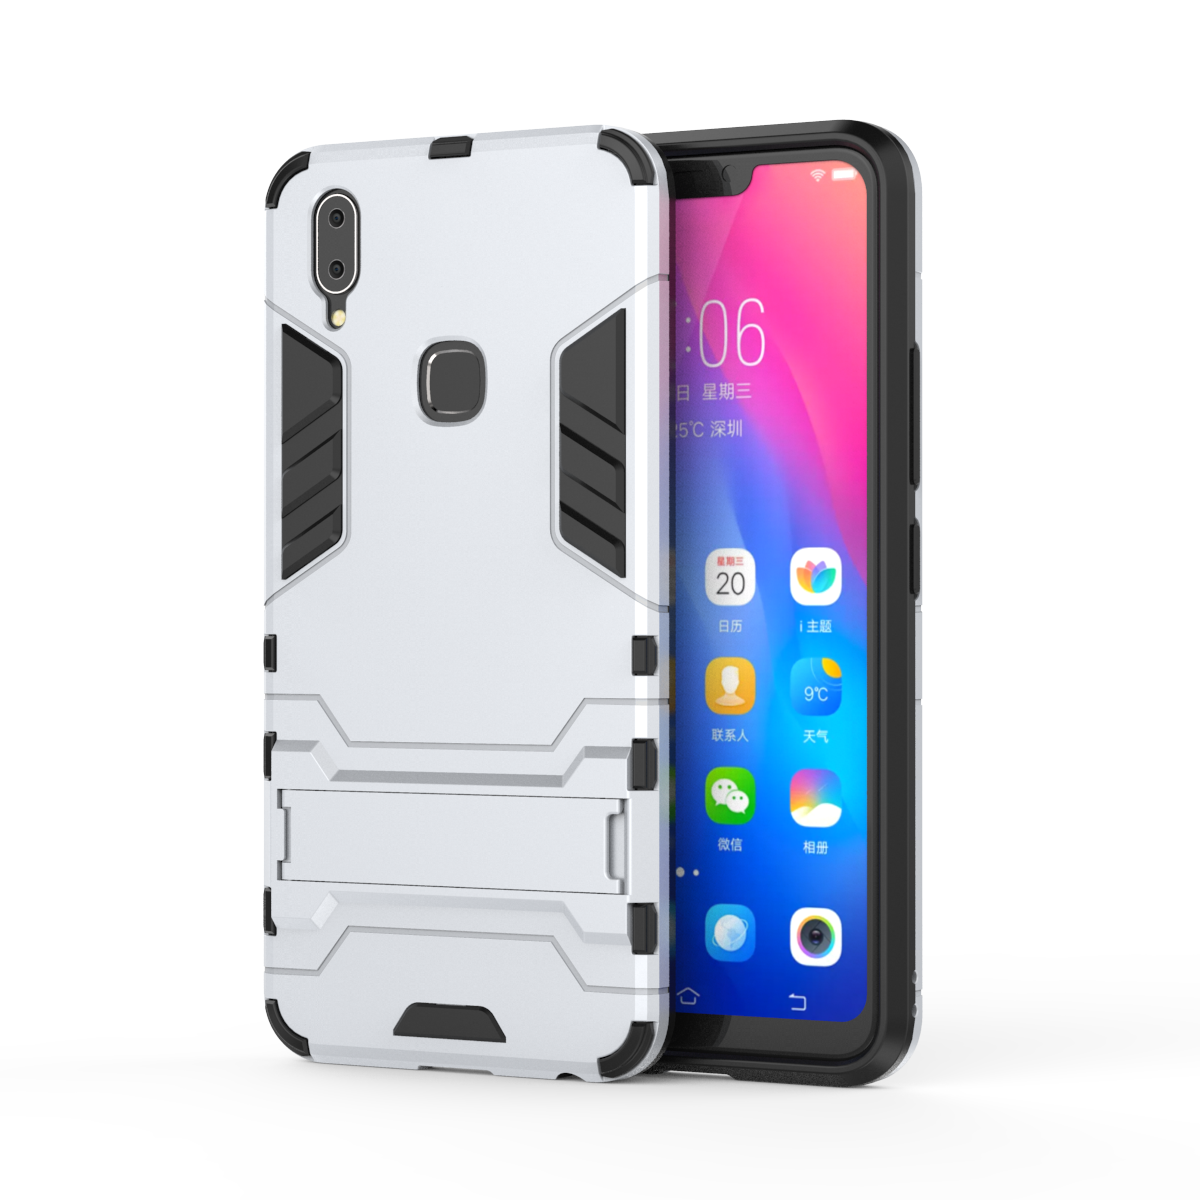 <font><b>3D</b></font> Shockproof Armor <font><b>Cases</b></font> For <font><b>ViVo</b></font> Y51 Y53 Y55 Y55L Y55S Y65 Y66 Y67 <font><b>Y69</b></font> Y71 Y73 Y75 Y75S Y79 Y83 Pro Y85 TPU Stand Phone Cover image